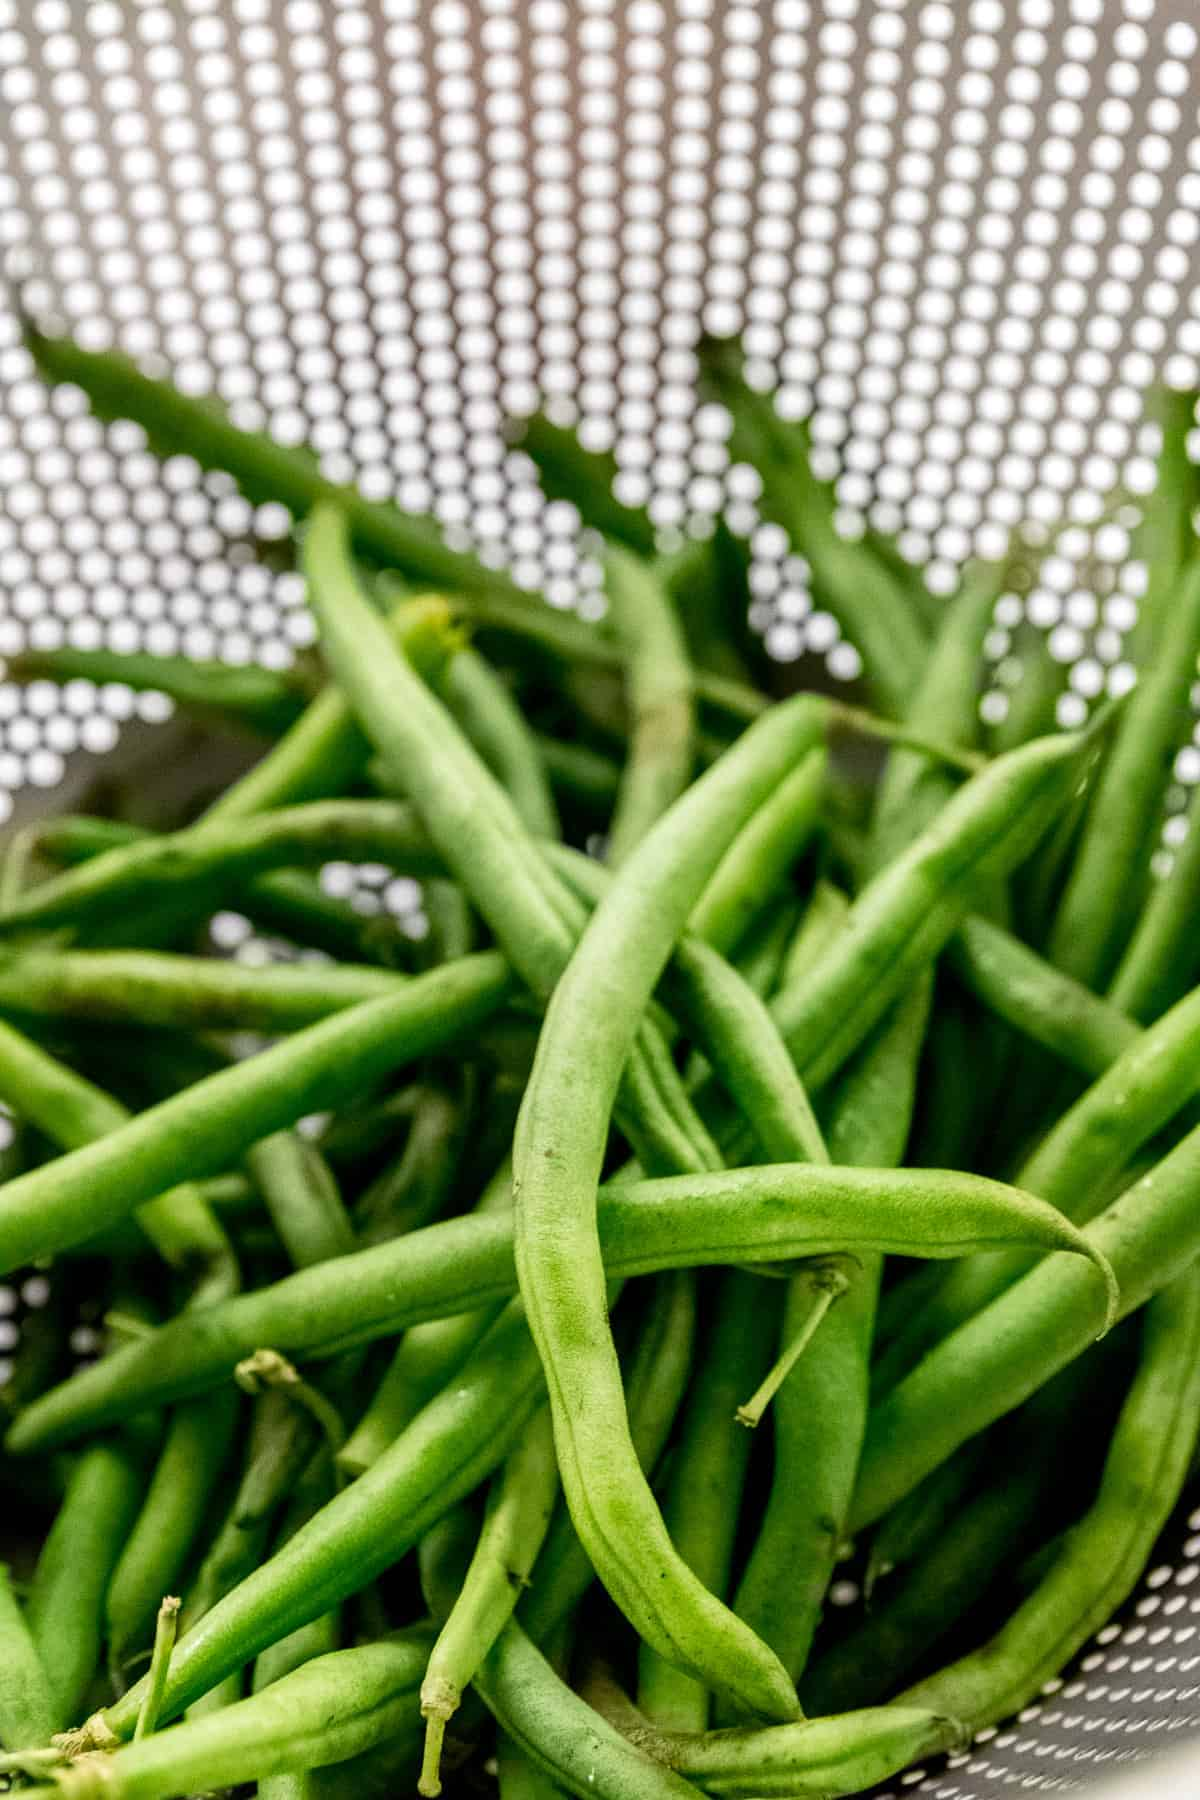 Green beans in a colander.